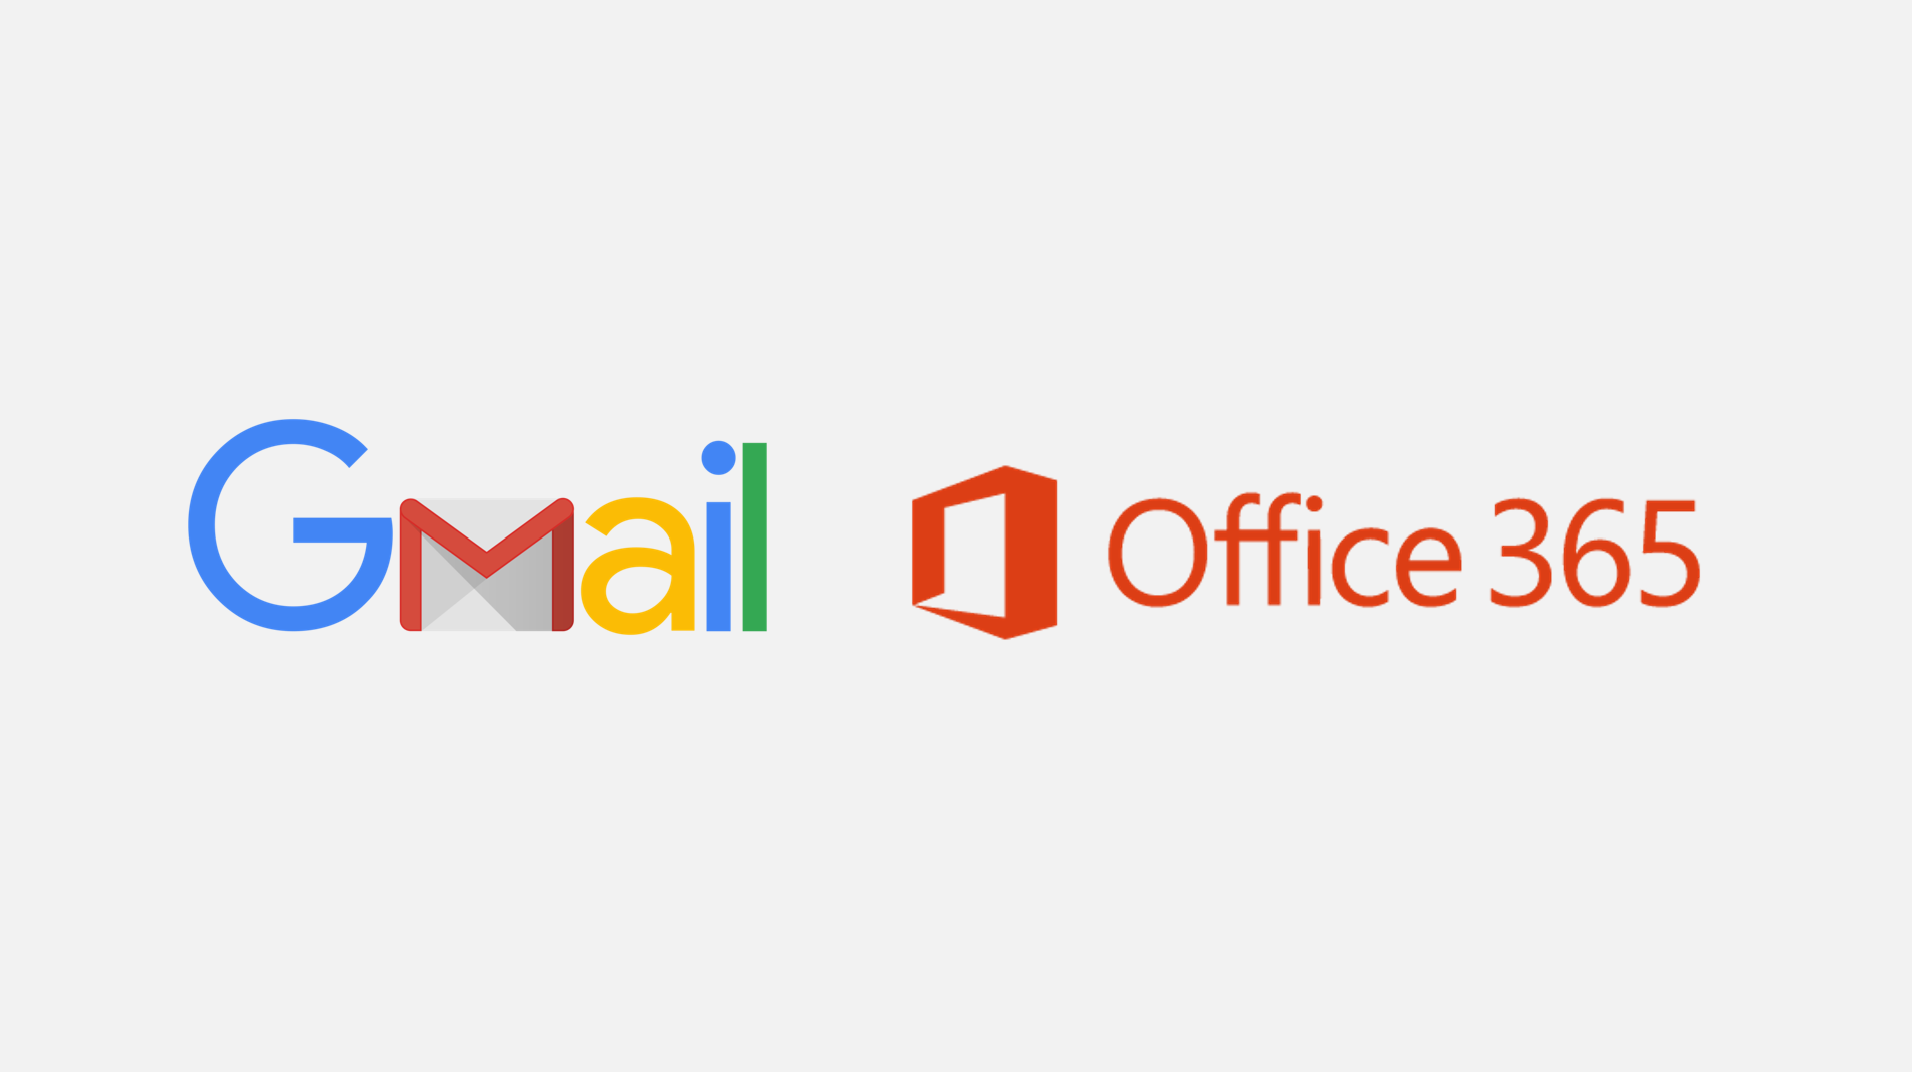 gmail office 365